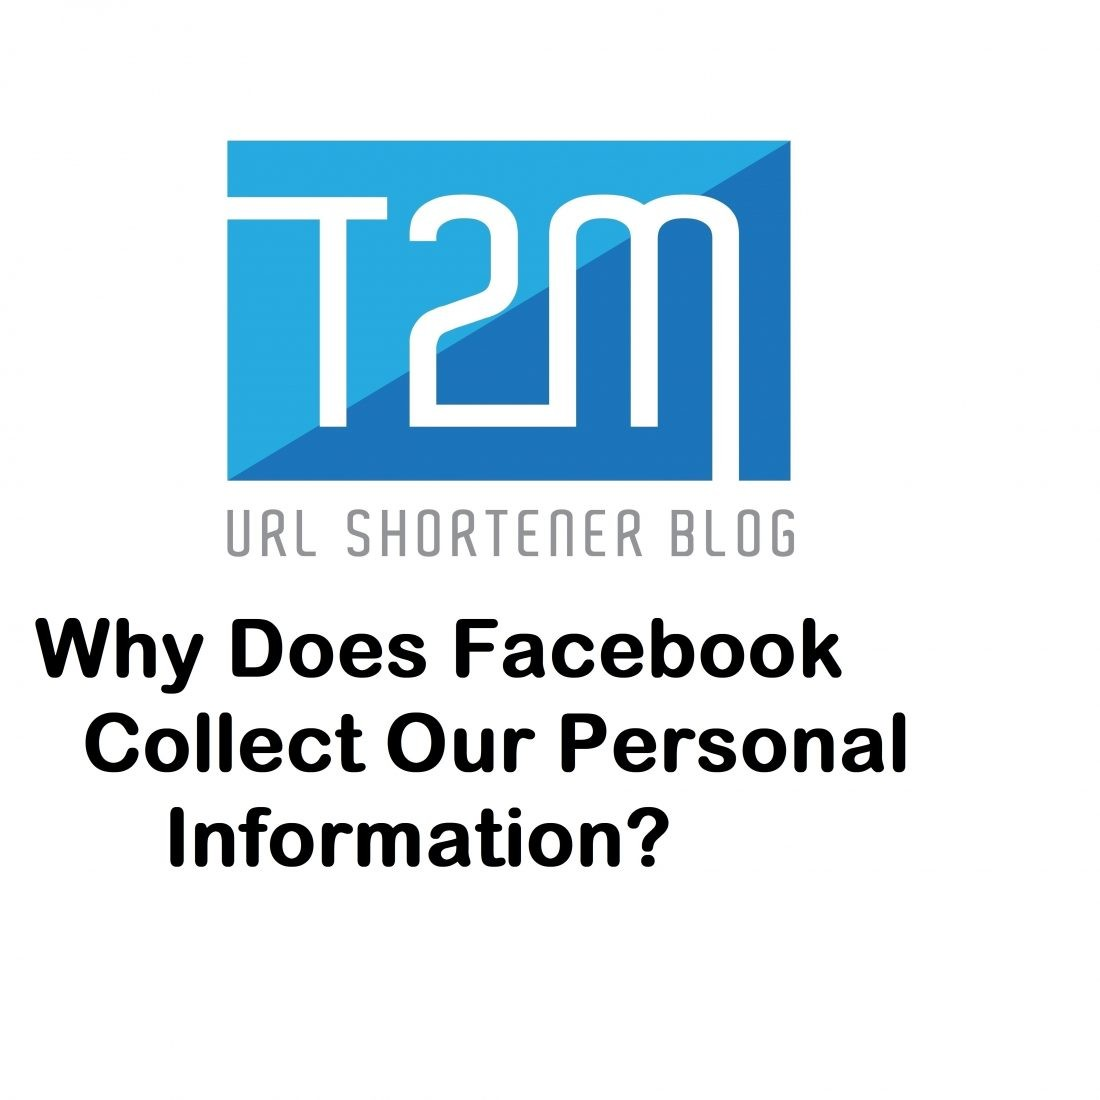 Why Does Facebook Collect Our Personal Information?